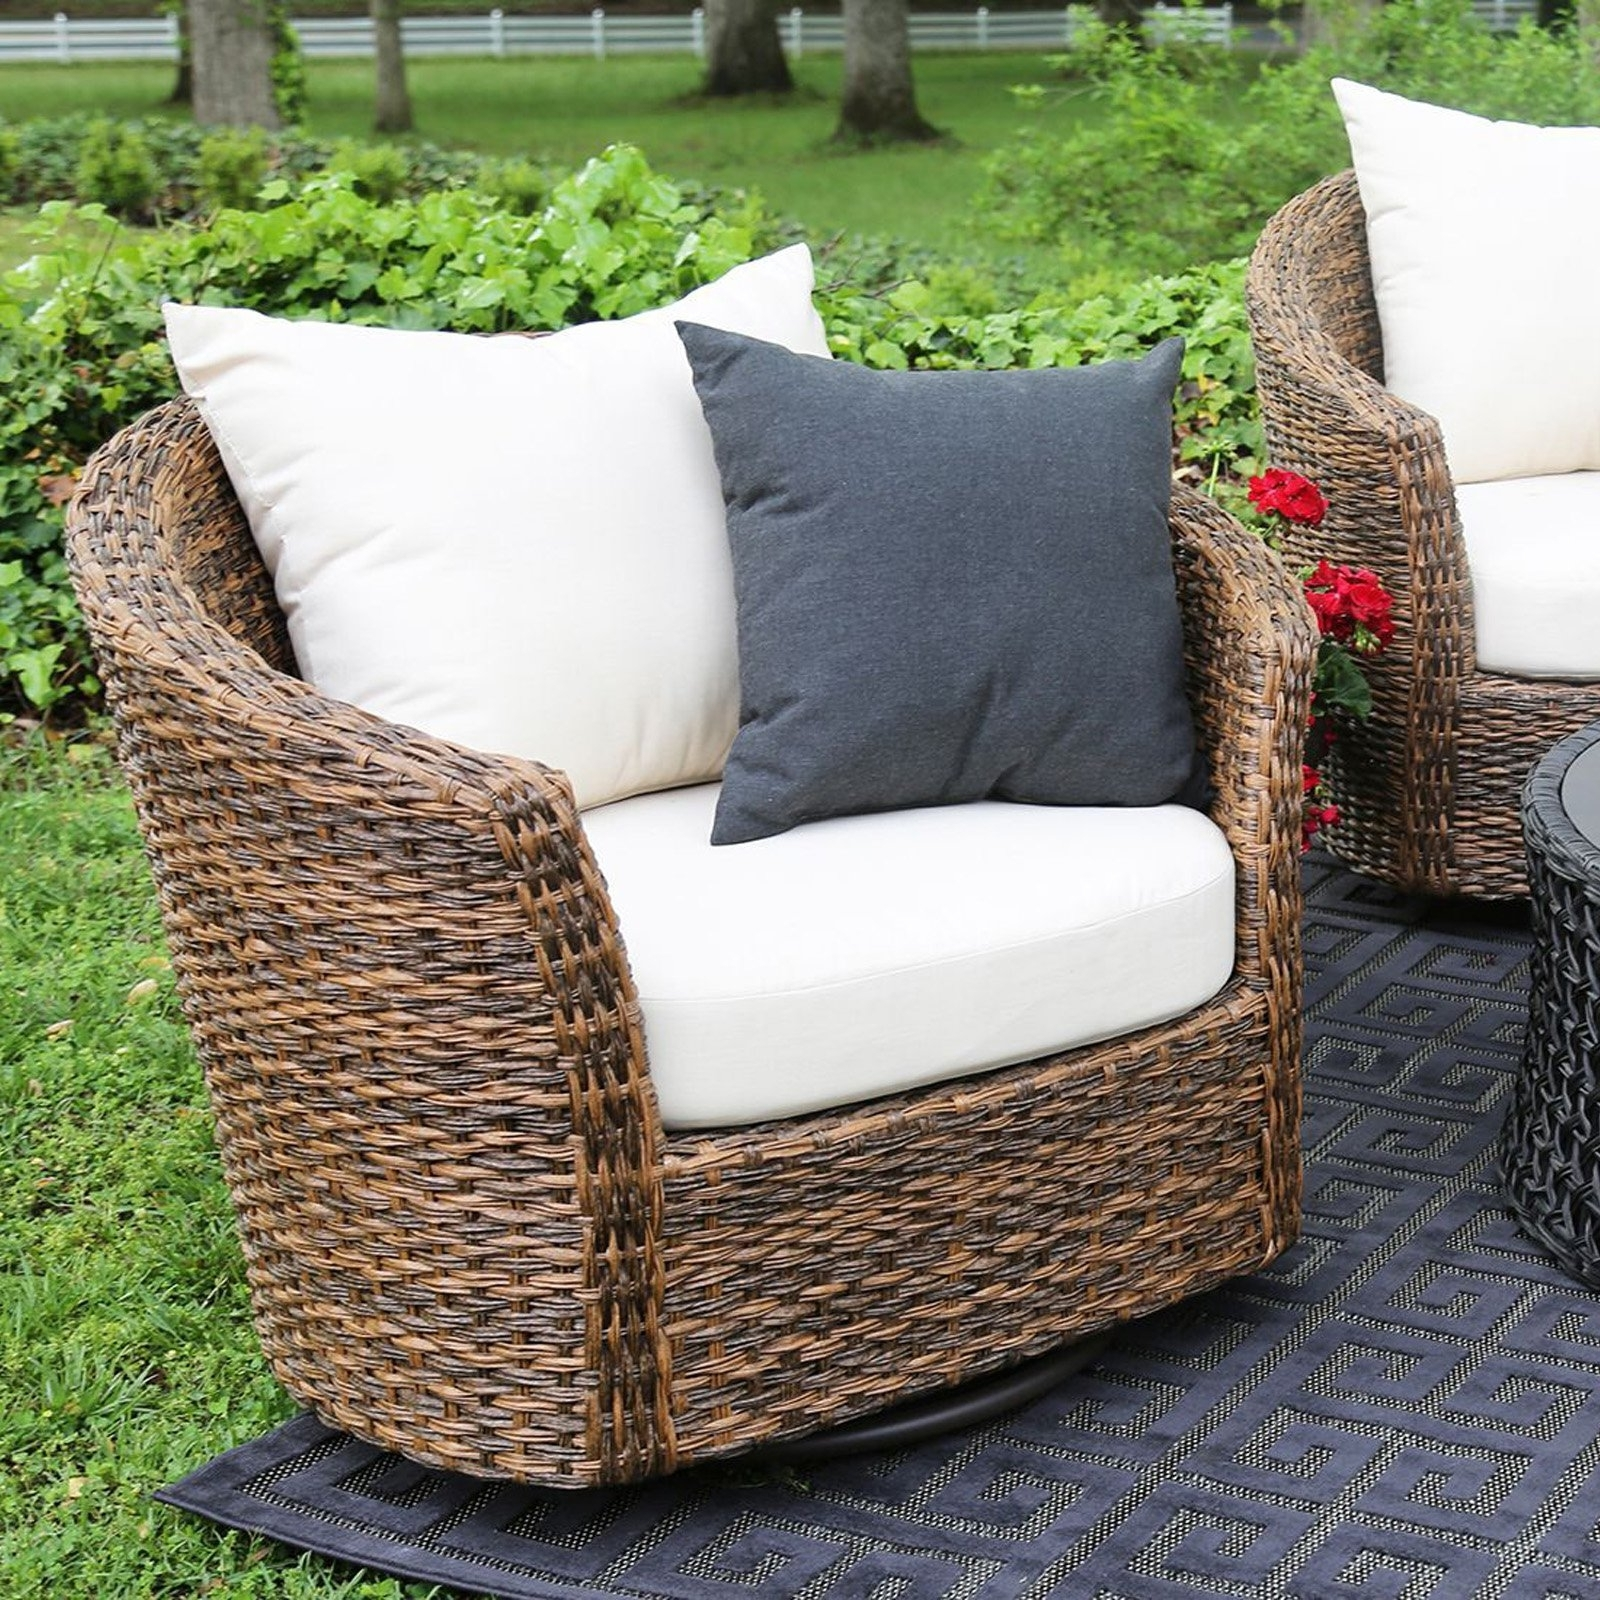 Enjoyable The Best Rona Patio Rocking Chairs Evergreenethics Interior Chair Design Evergreenethicsorg